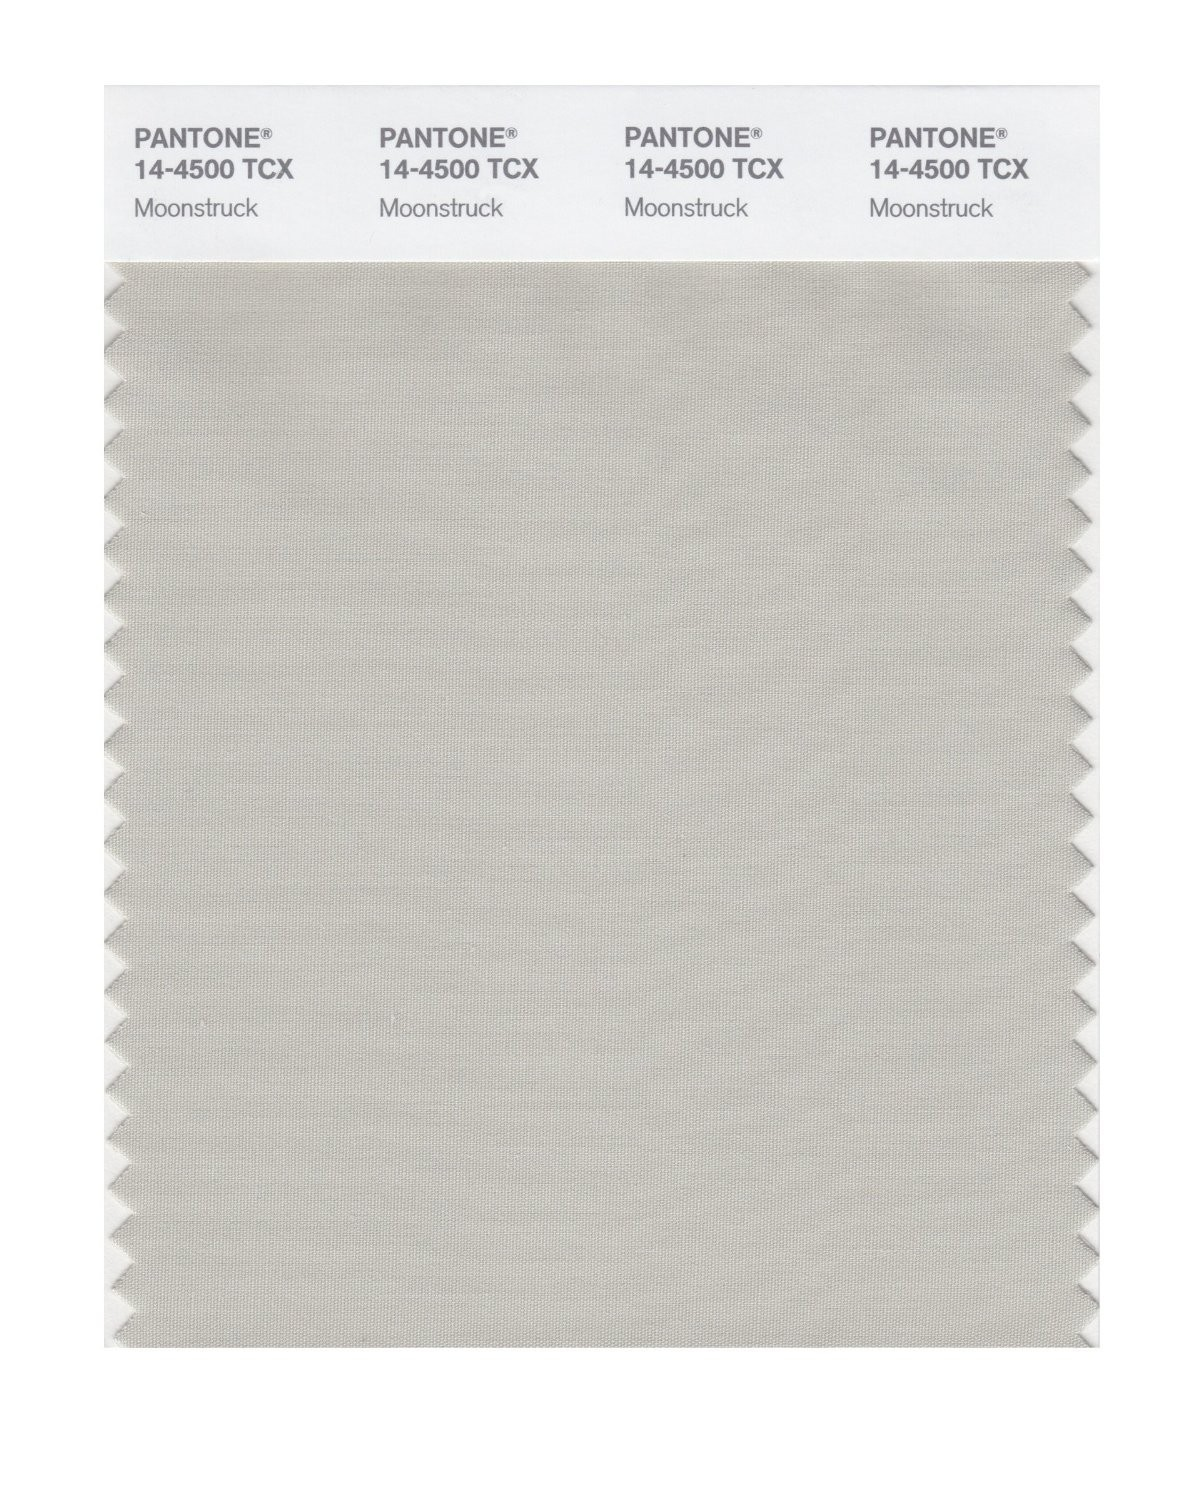 Pantone 14-4500 TCX Swatch Card Moonstruck